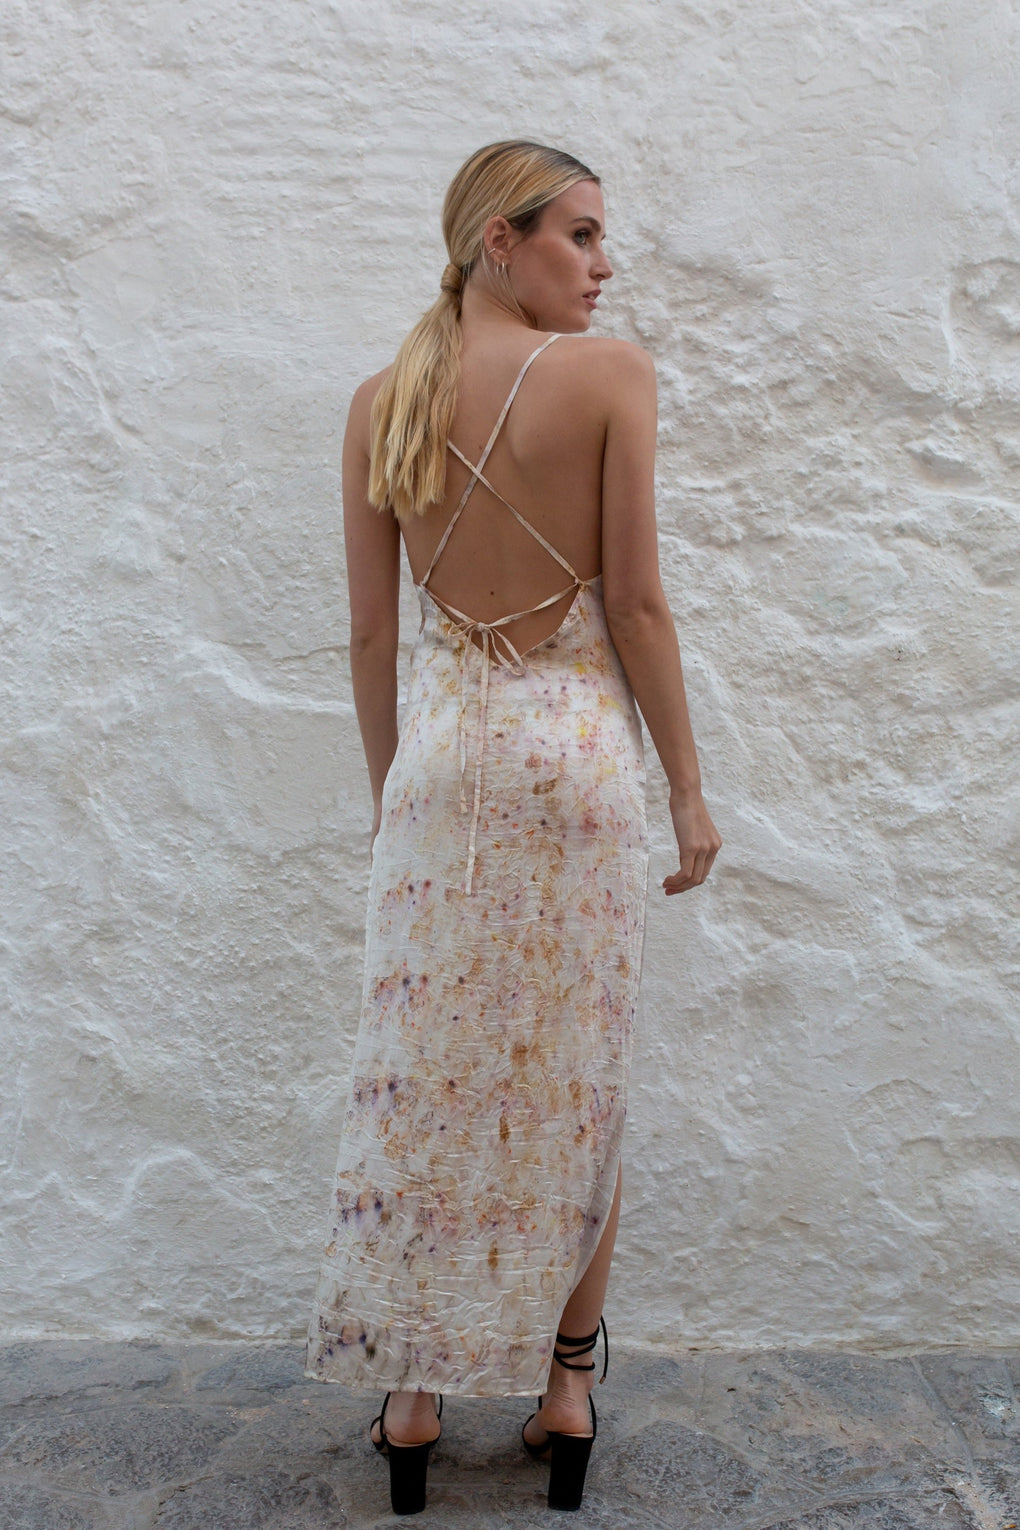 Spicy Flowers Slip Dress - Unique piece - Audace Manifesto